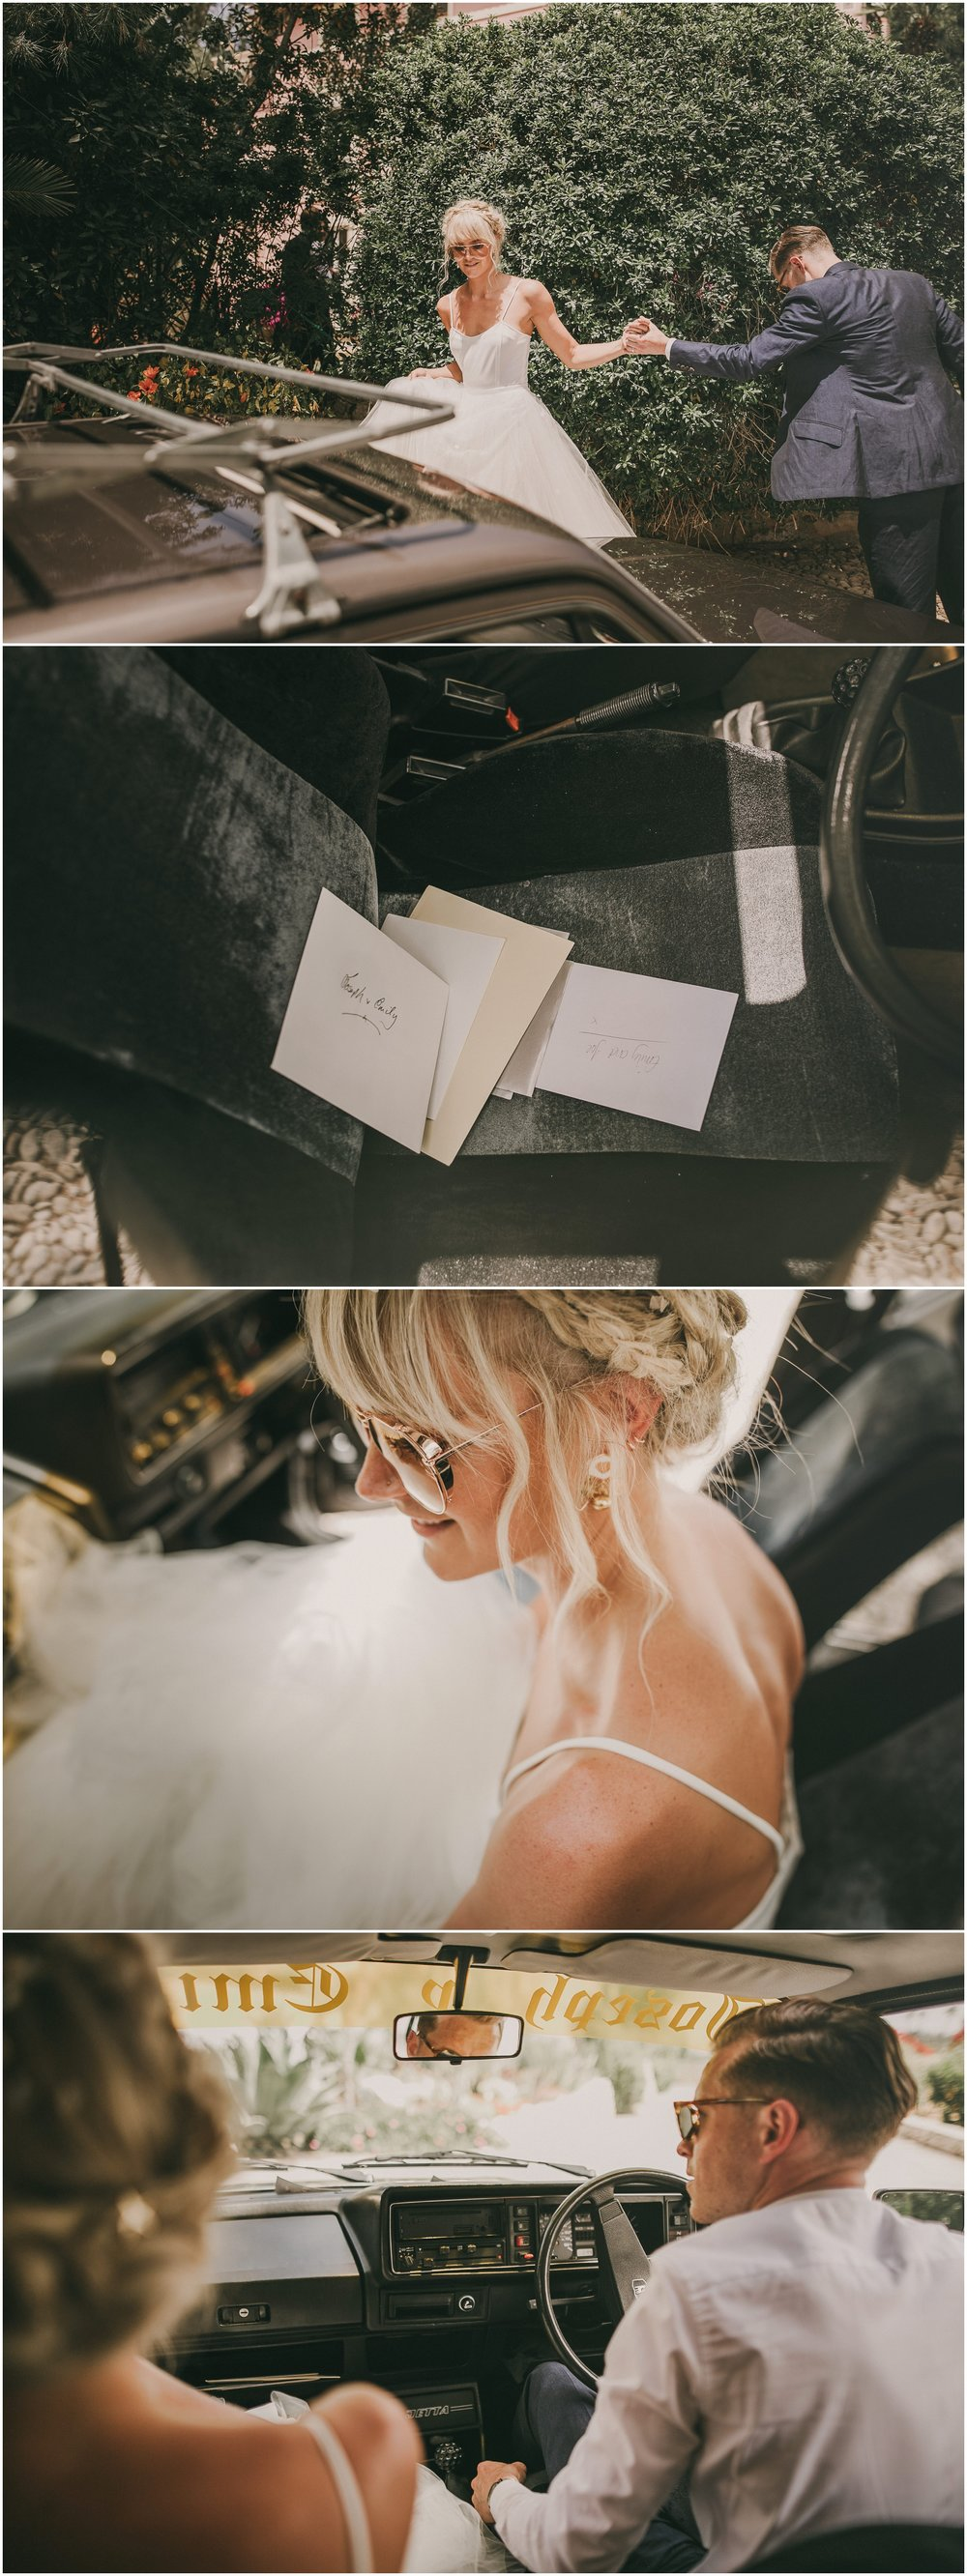 Emily & Joseph London wedding  by Pablo Laguia 111.JPG